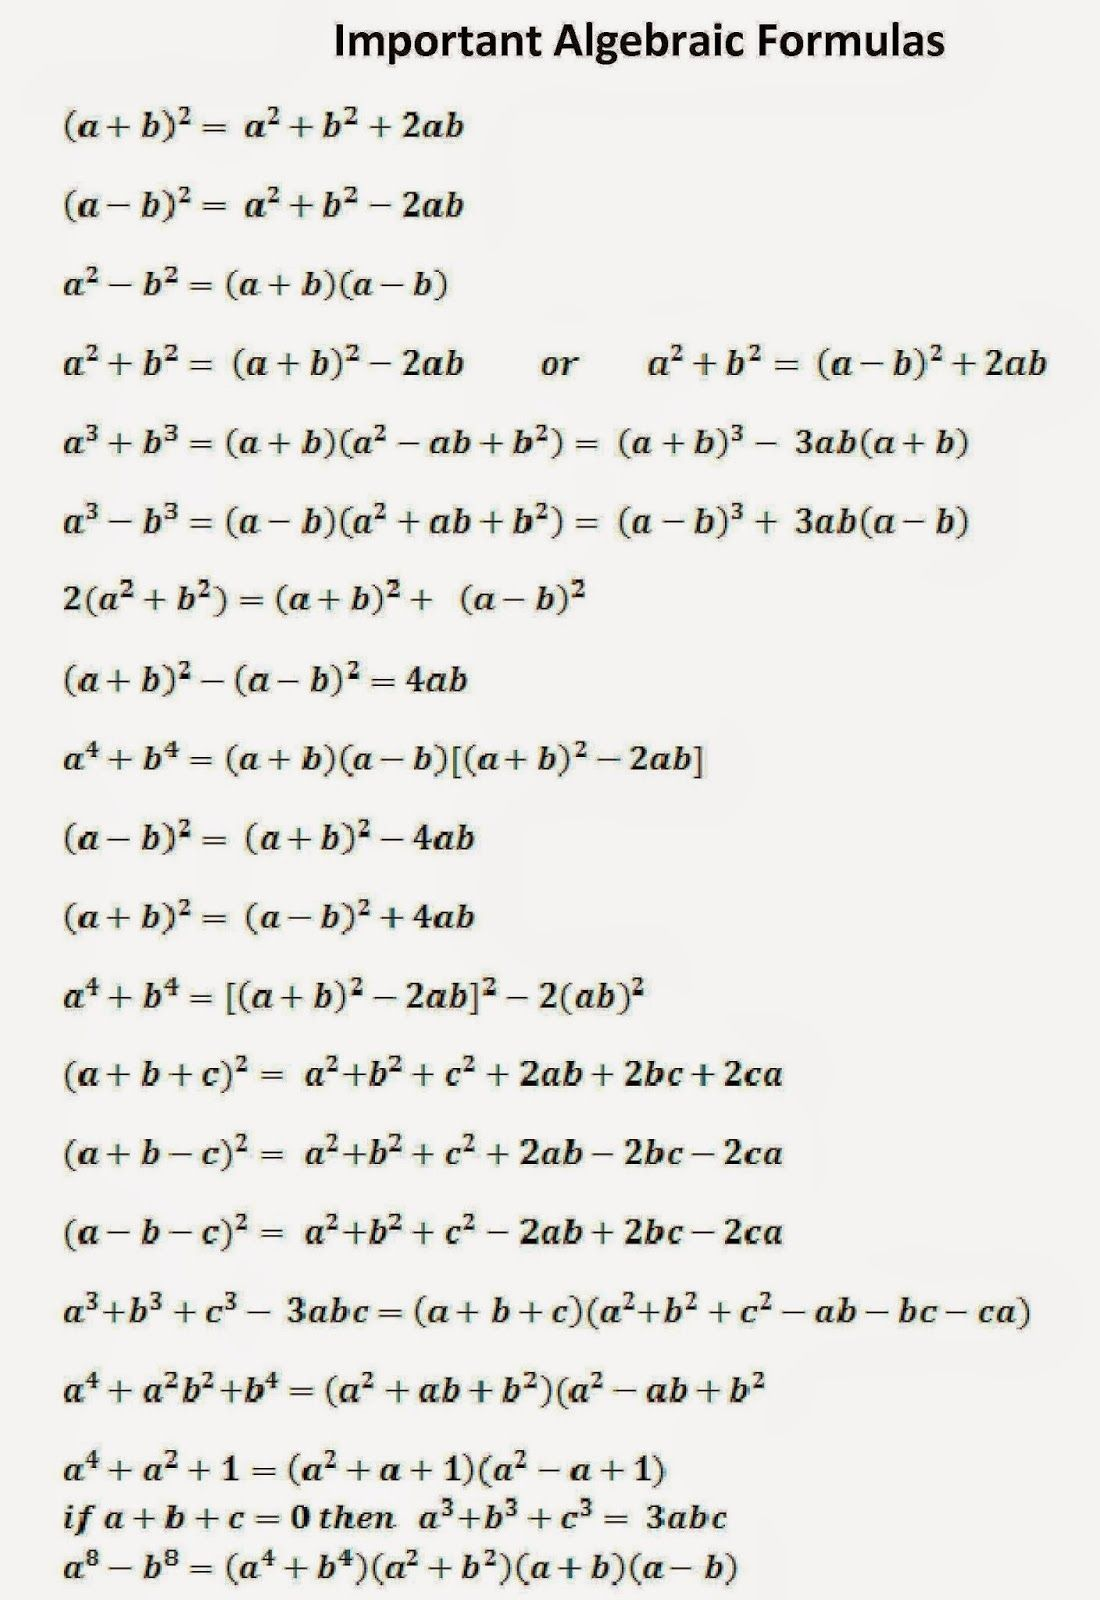 Ssc Adda Algebraic Formulas Part 1 Can Diodetransistor Logic Electronics And Electrical Quizzes Eeweb Cant Believe Someone Actually Organize This List Prove The Second To Last One